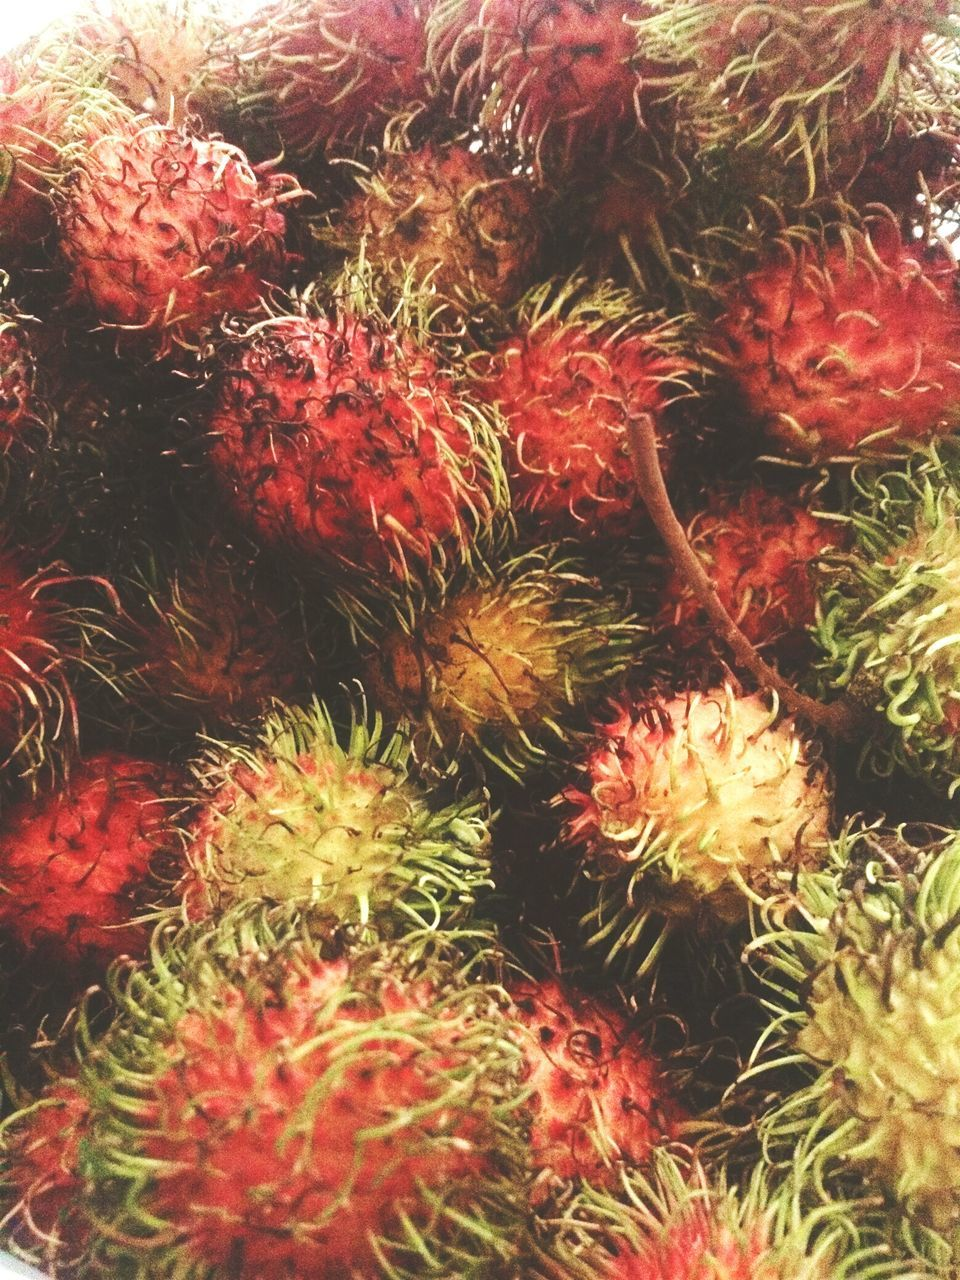 cactus, freshness, red, no people, nature, growth, plant, food and drink, backgrounds, full frame, beauty in nature, fruit, close-up, food, outdoors, day, healthy eating